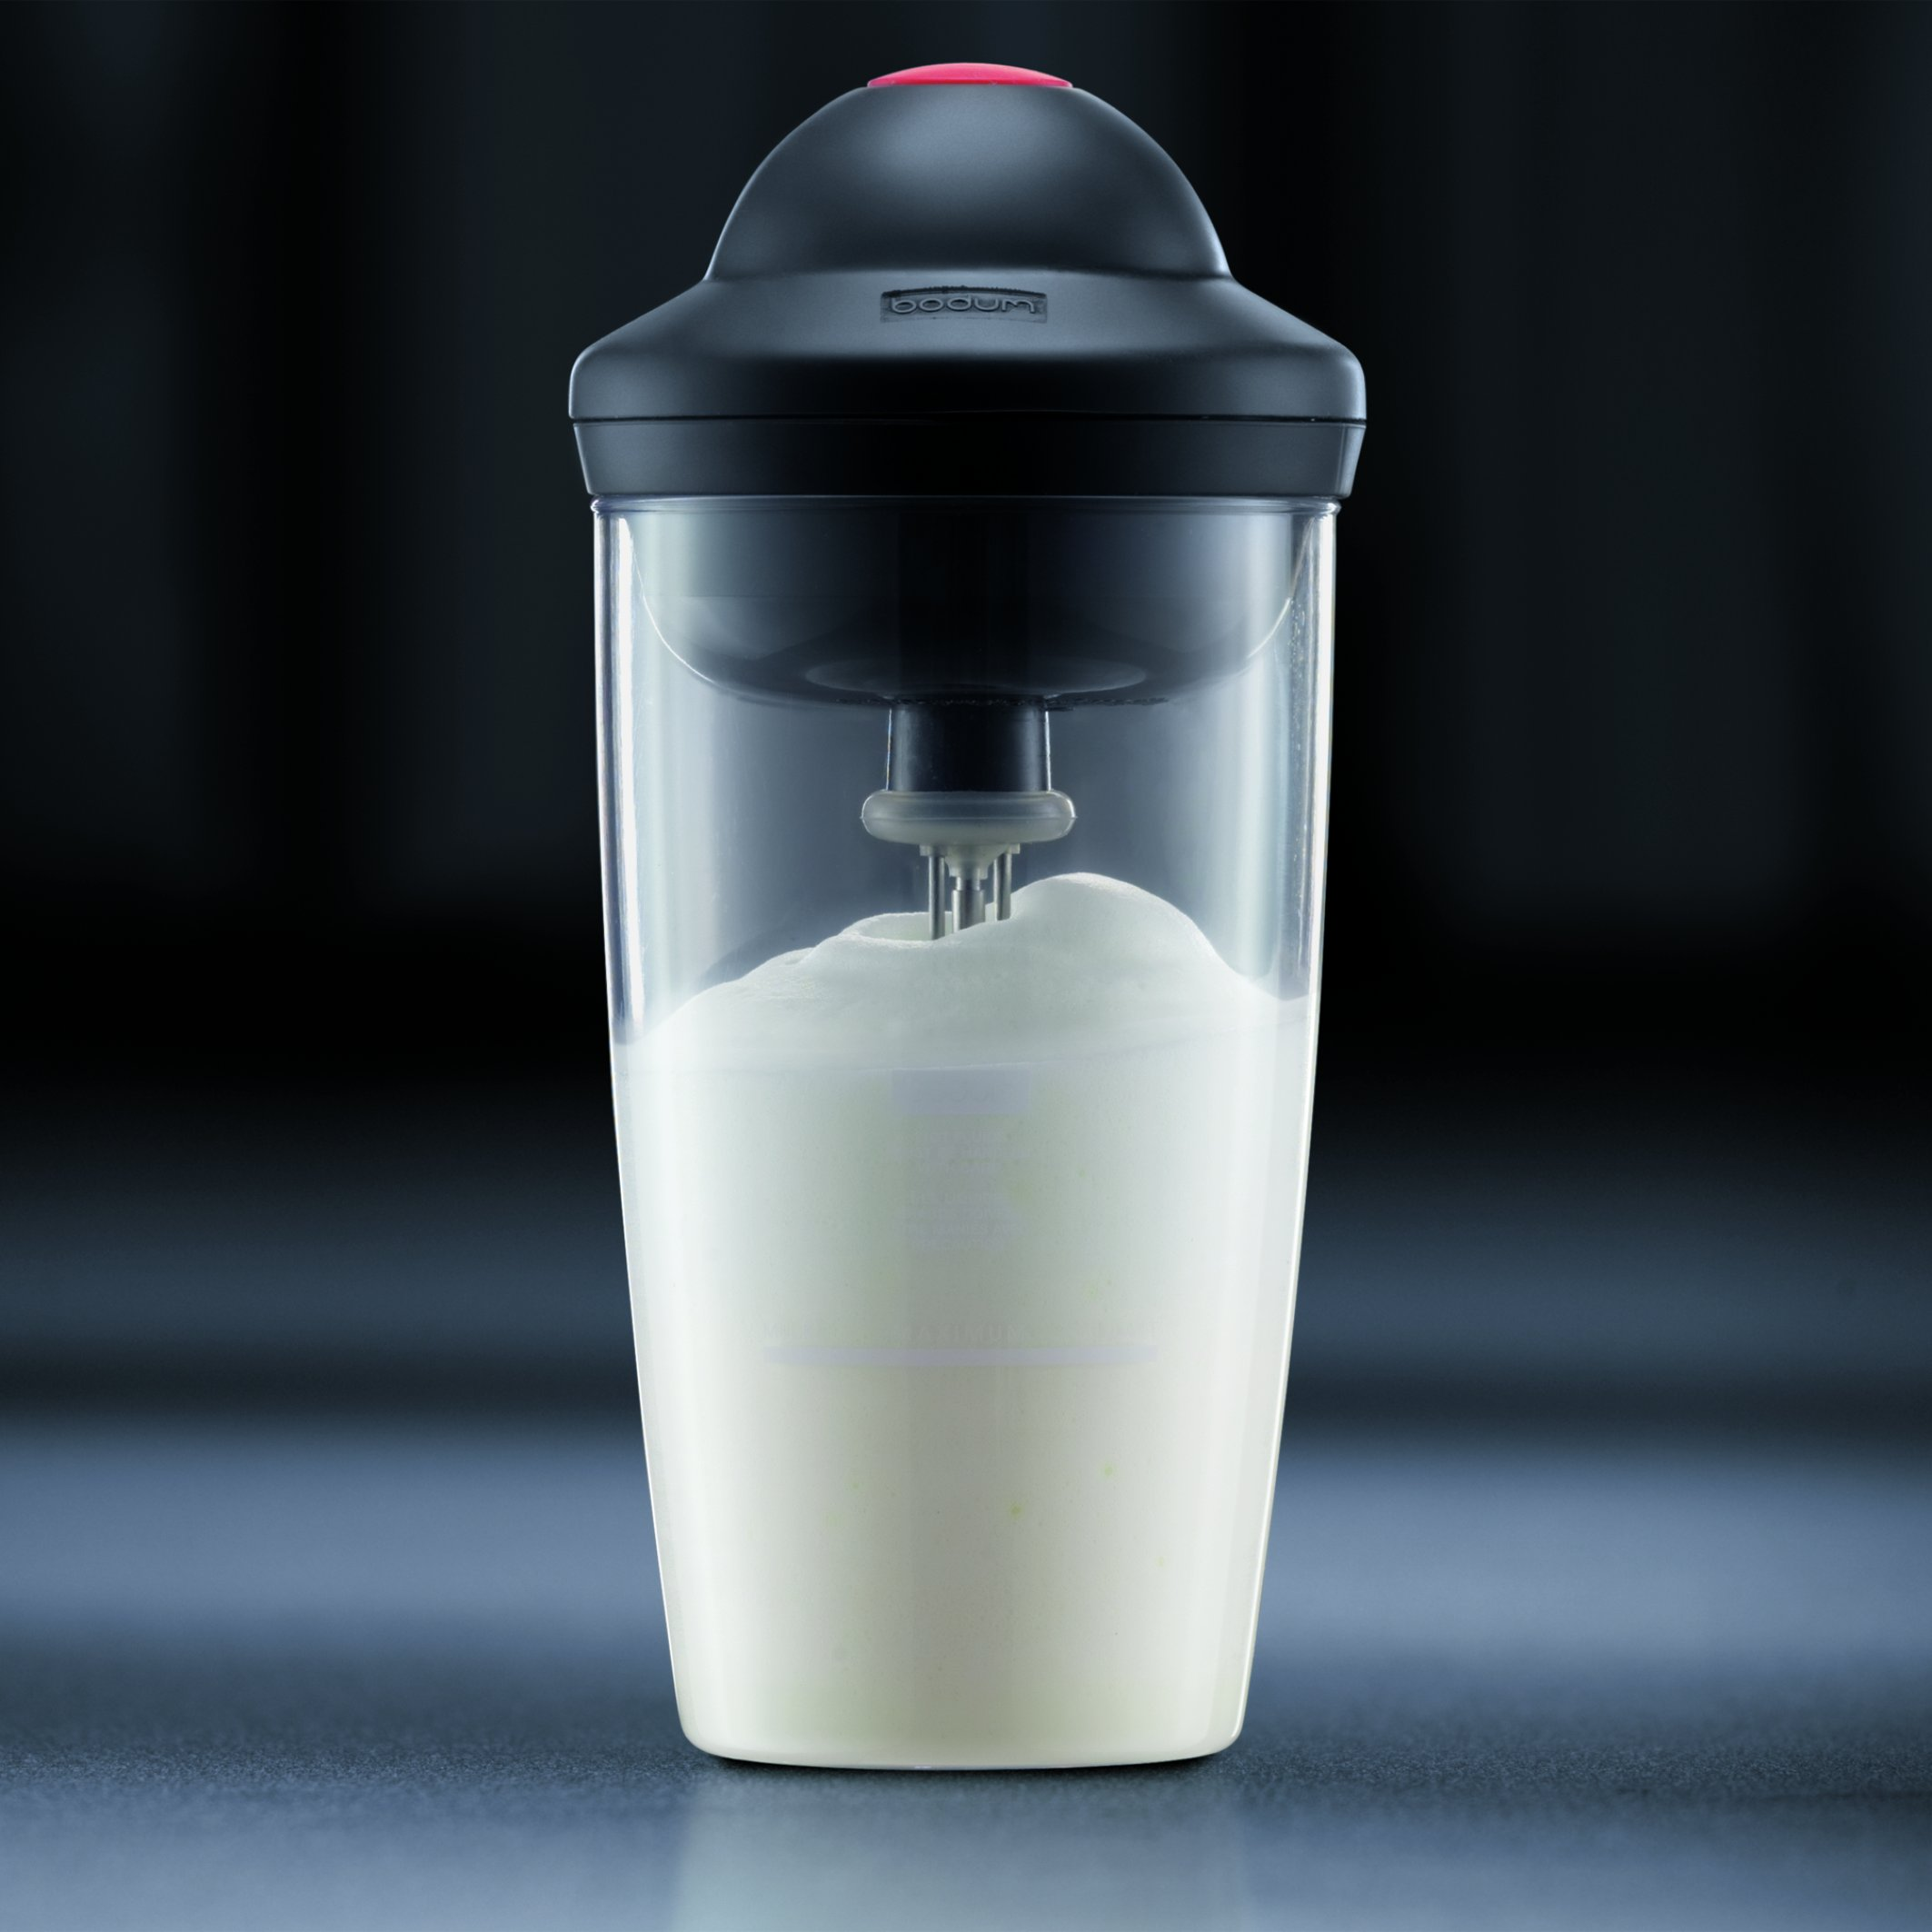 Bodum Latte Milk Frother, Battery operated, 0.2 l, 6 oz, Glass/Off White, 10864-913G